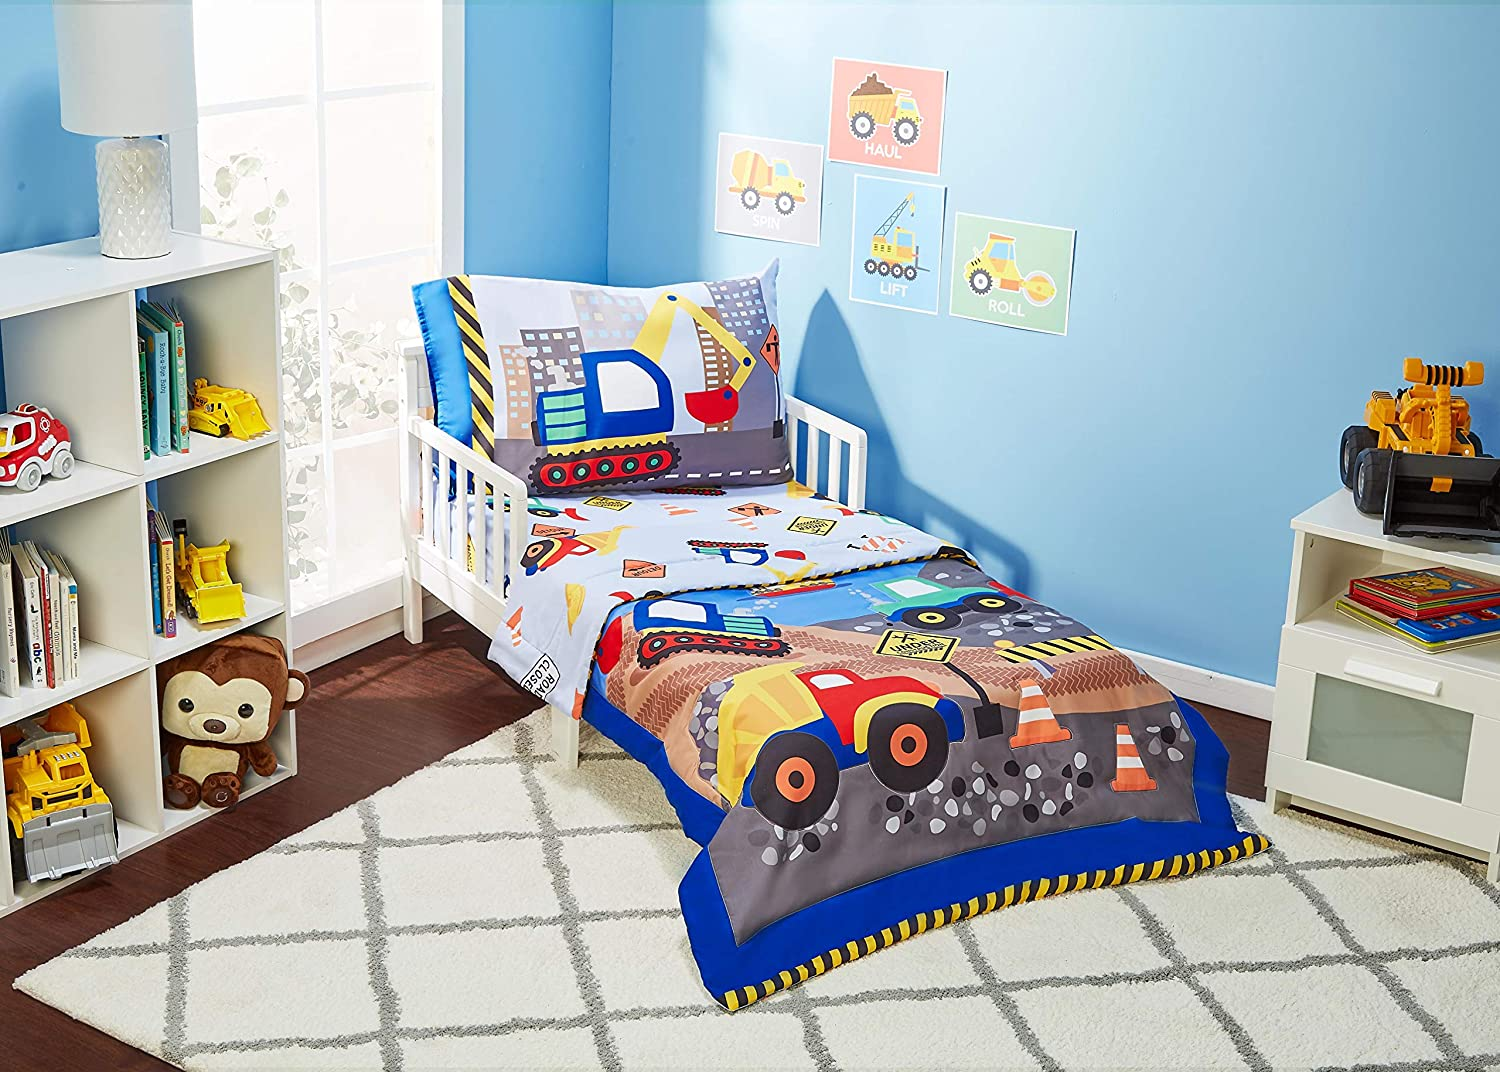 4 Piece Toddler Bedding Set - Under Construction